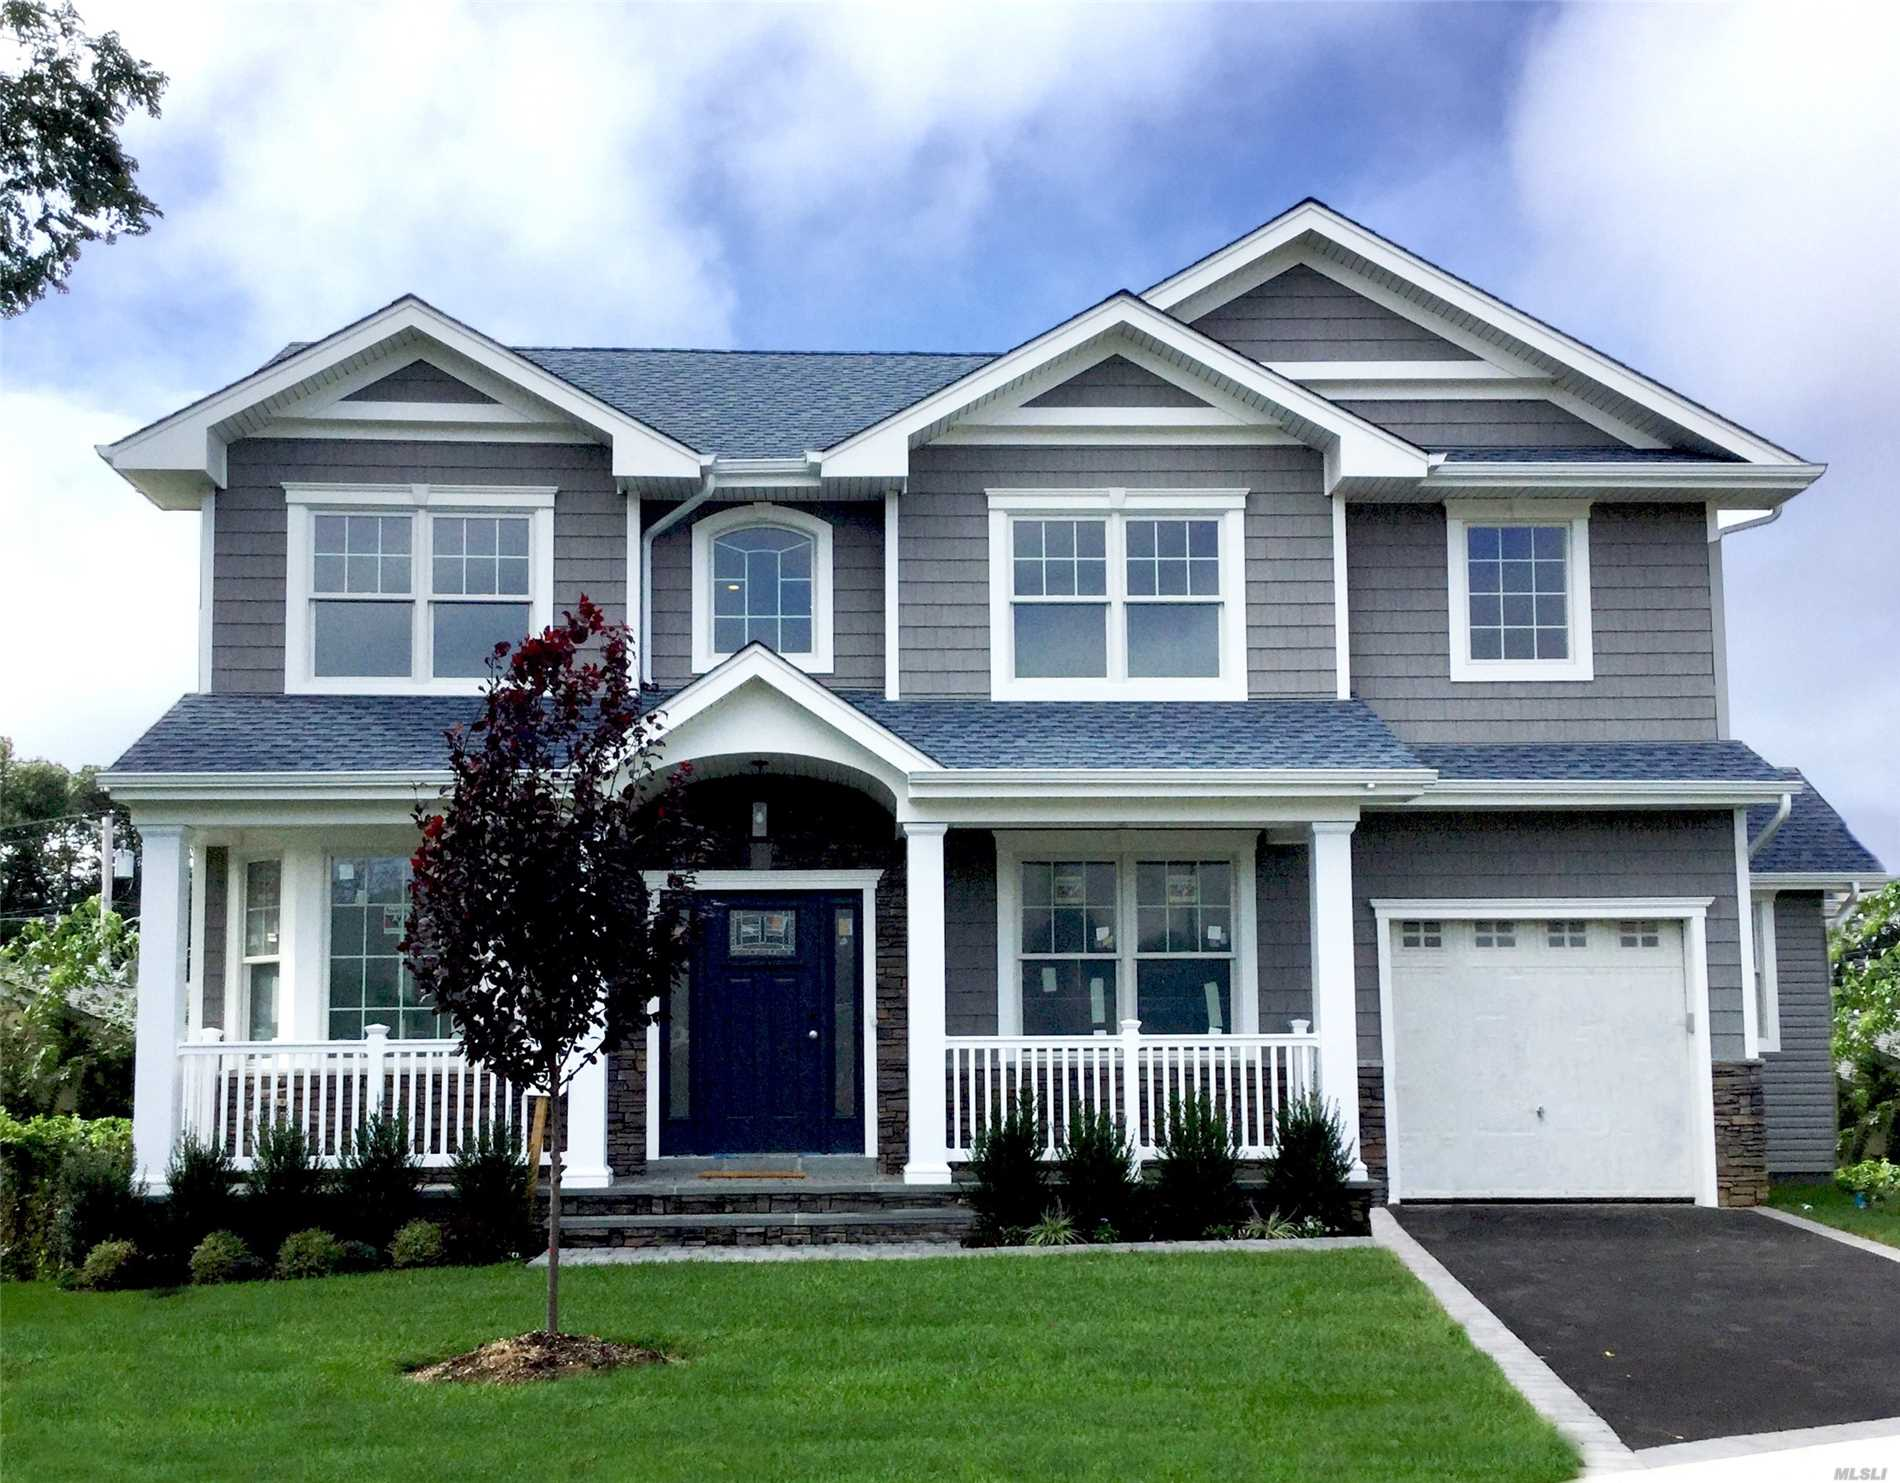 Brand New 4 Bdrm Colonial On Newly Constructed Cul-De-Sac. Beautiful Molding Package & Chefs Eat In Kitchen. Hardwood Floors Throughout. Top Of The Line Finishes,  Plenty Of Closet Space. 9 Ft. Ceilings In Full Basement.